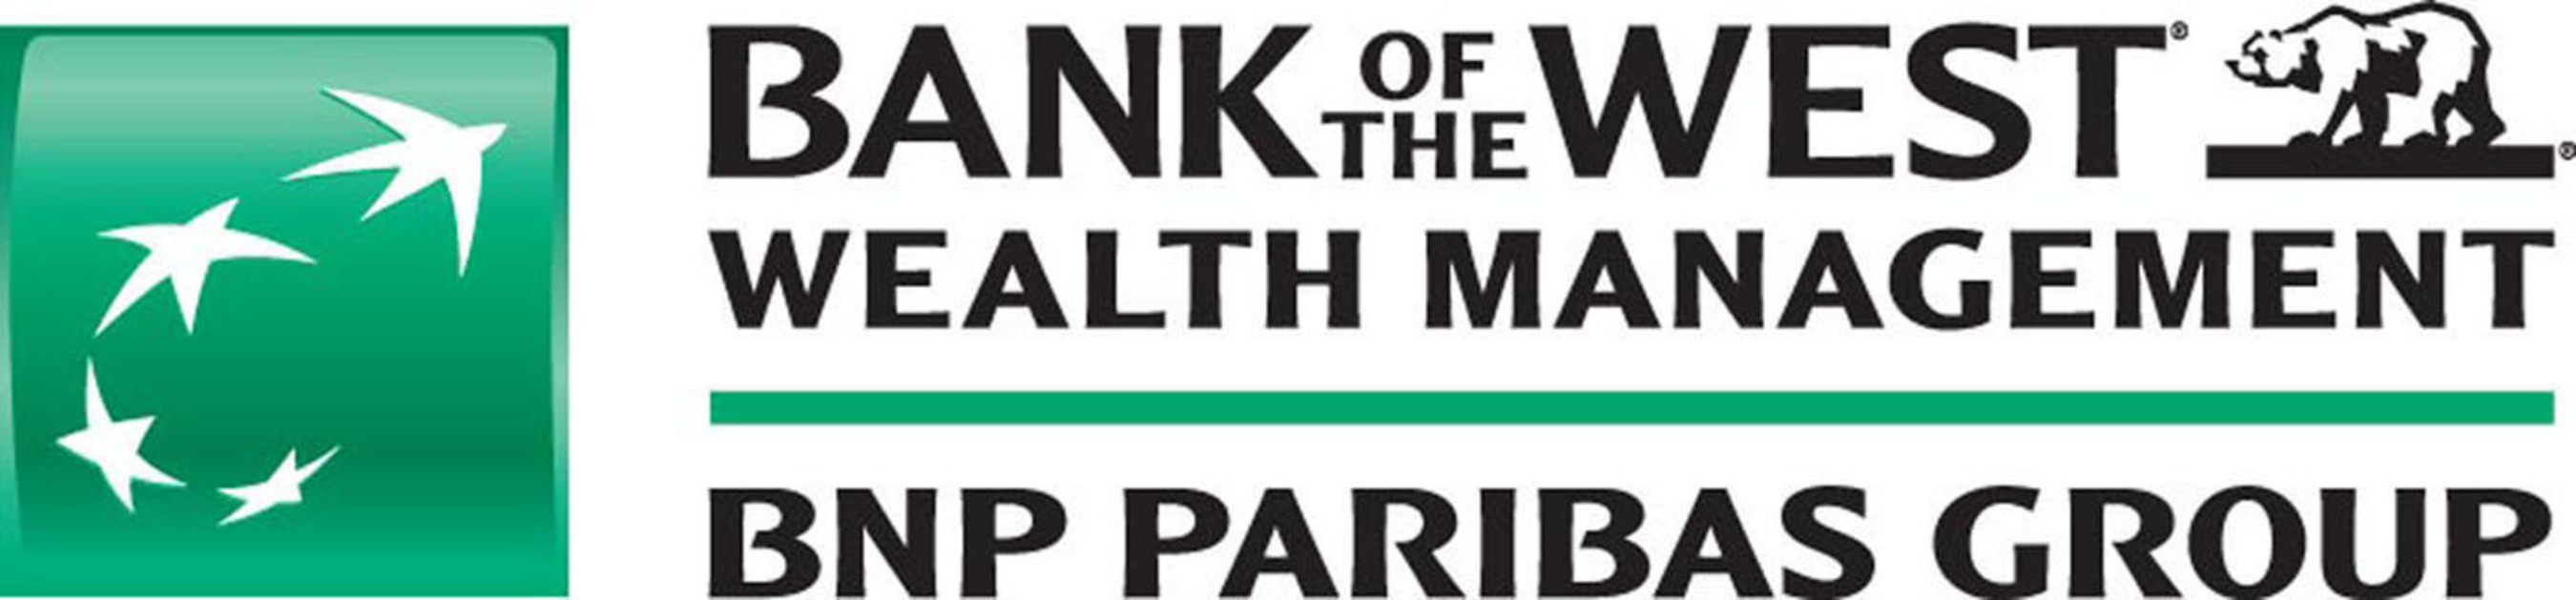 Bank of the West Wealth Management logo.